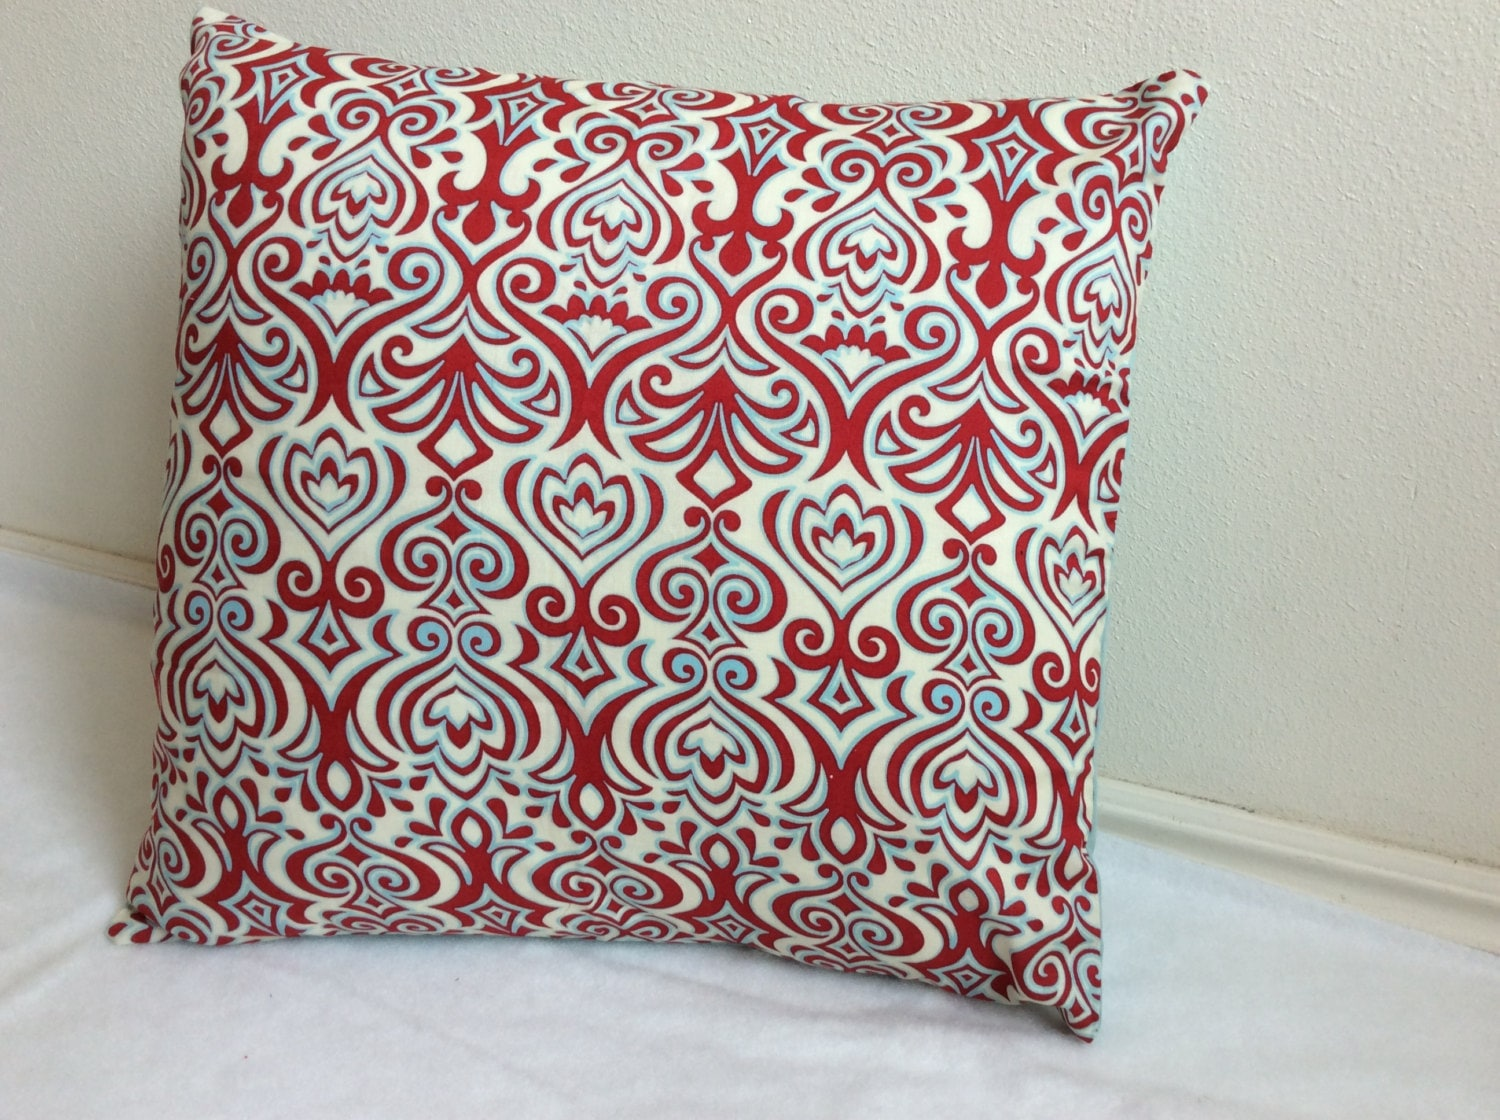 Decorative Pillows With Washable Covers : Throw pillow covers 16 x 16 washable removablered by BellsPillows